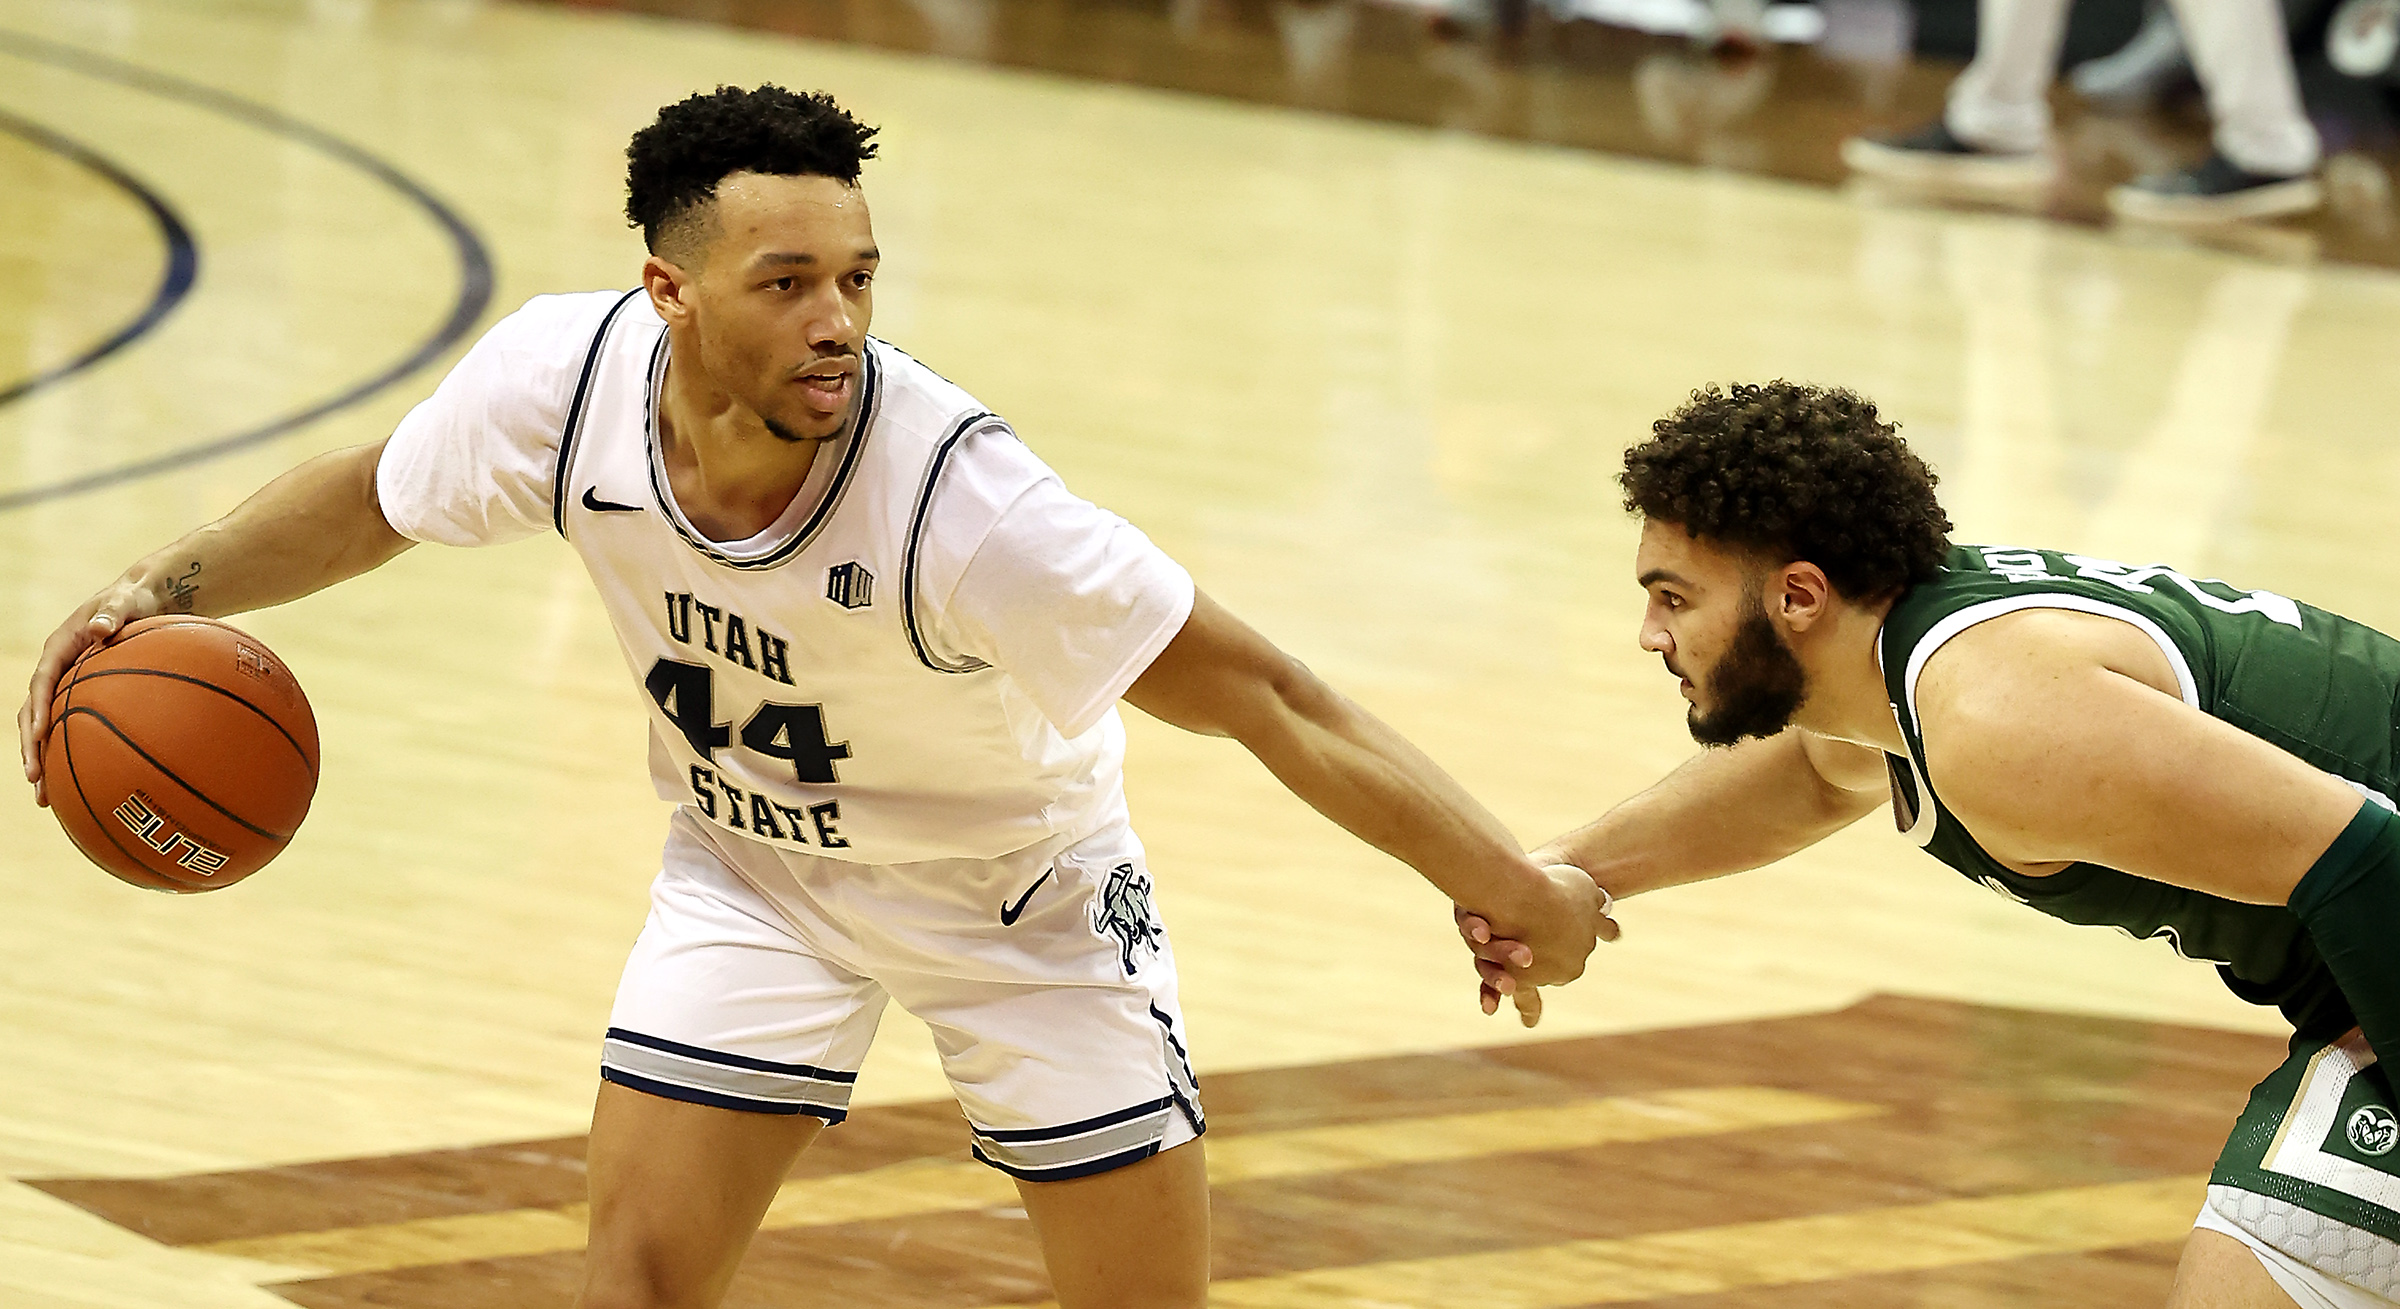 Utah State Aggies guard Marco Anthony (44) looks to get around Colorado State Rams guard David Roddy (21) as their hands come together as Utah State and Colorado State play in the Mountain West Tournament at the Thomas & Mack Center in Las Vegas on Friday, March 12, 2021. Utah State won 62-50.